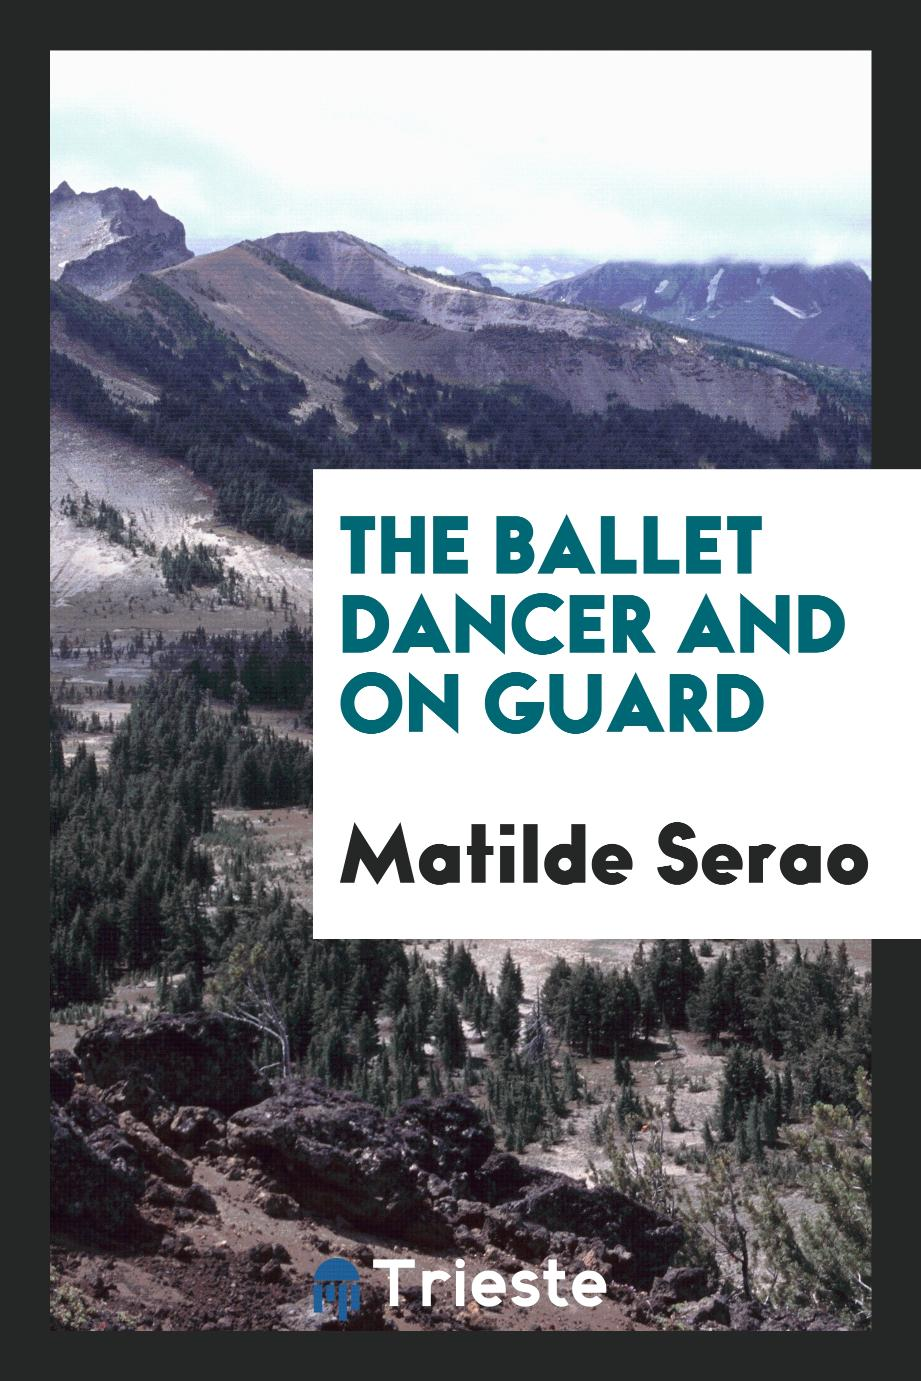 The ballet dancer and On guard